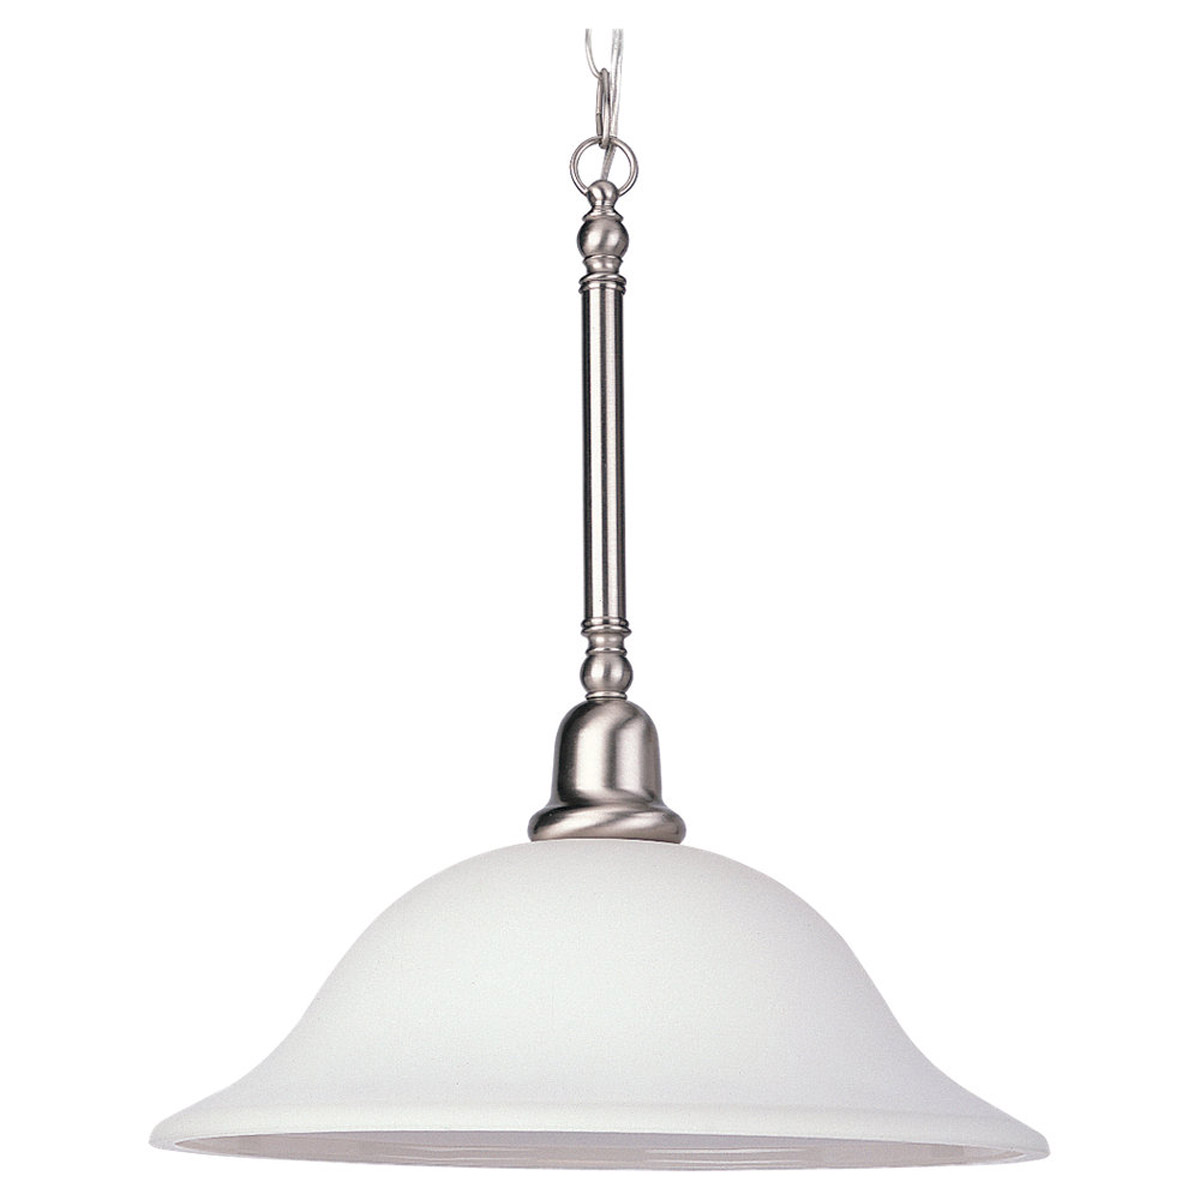 Sea Gull Lighting Sussex 1 Light Pendant in Brushed Nickel 66060-962